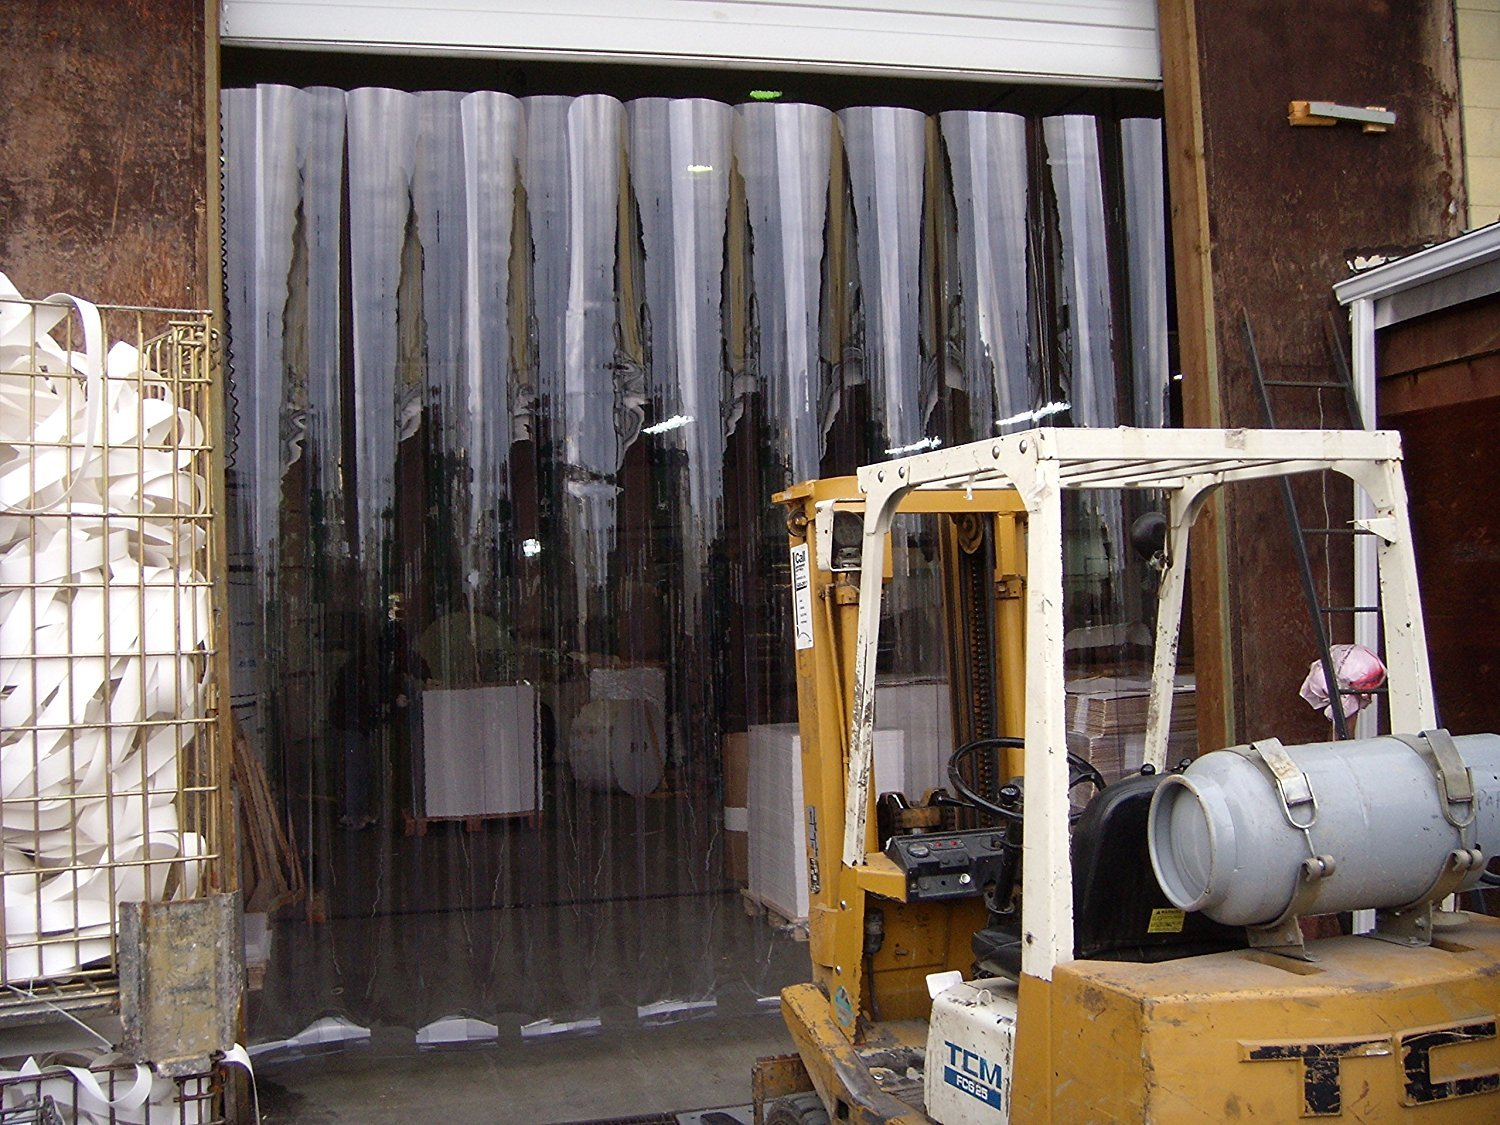 strips with 50/% overlap Frosted 8 in Stainless Steel Hardware 7 ft height 84 in. Strip-Curtains.com: Strip Door Curtain width X 84 in. 7 ft